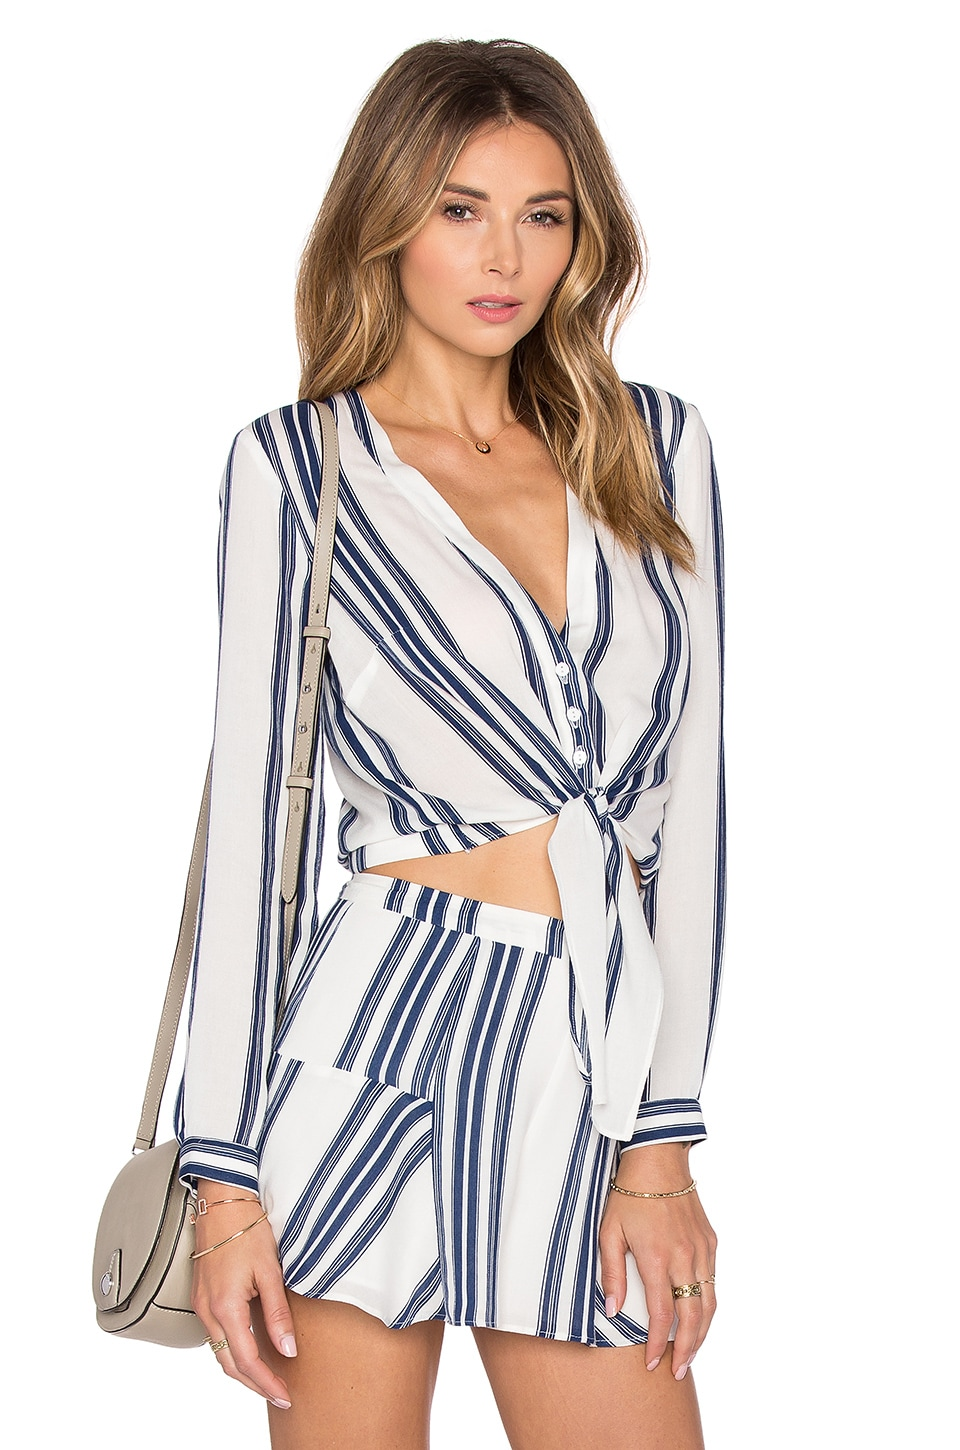 Lovers + Friends Carmine Top in Navy Stripe